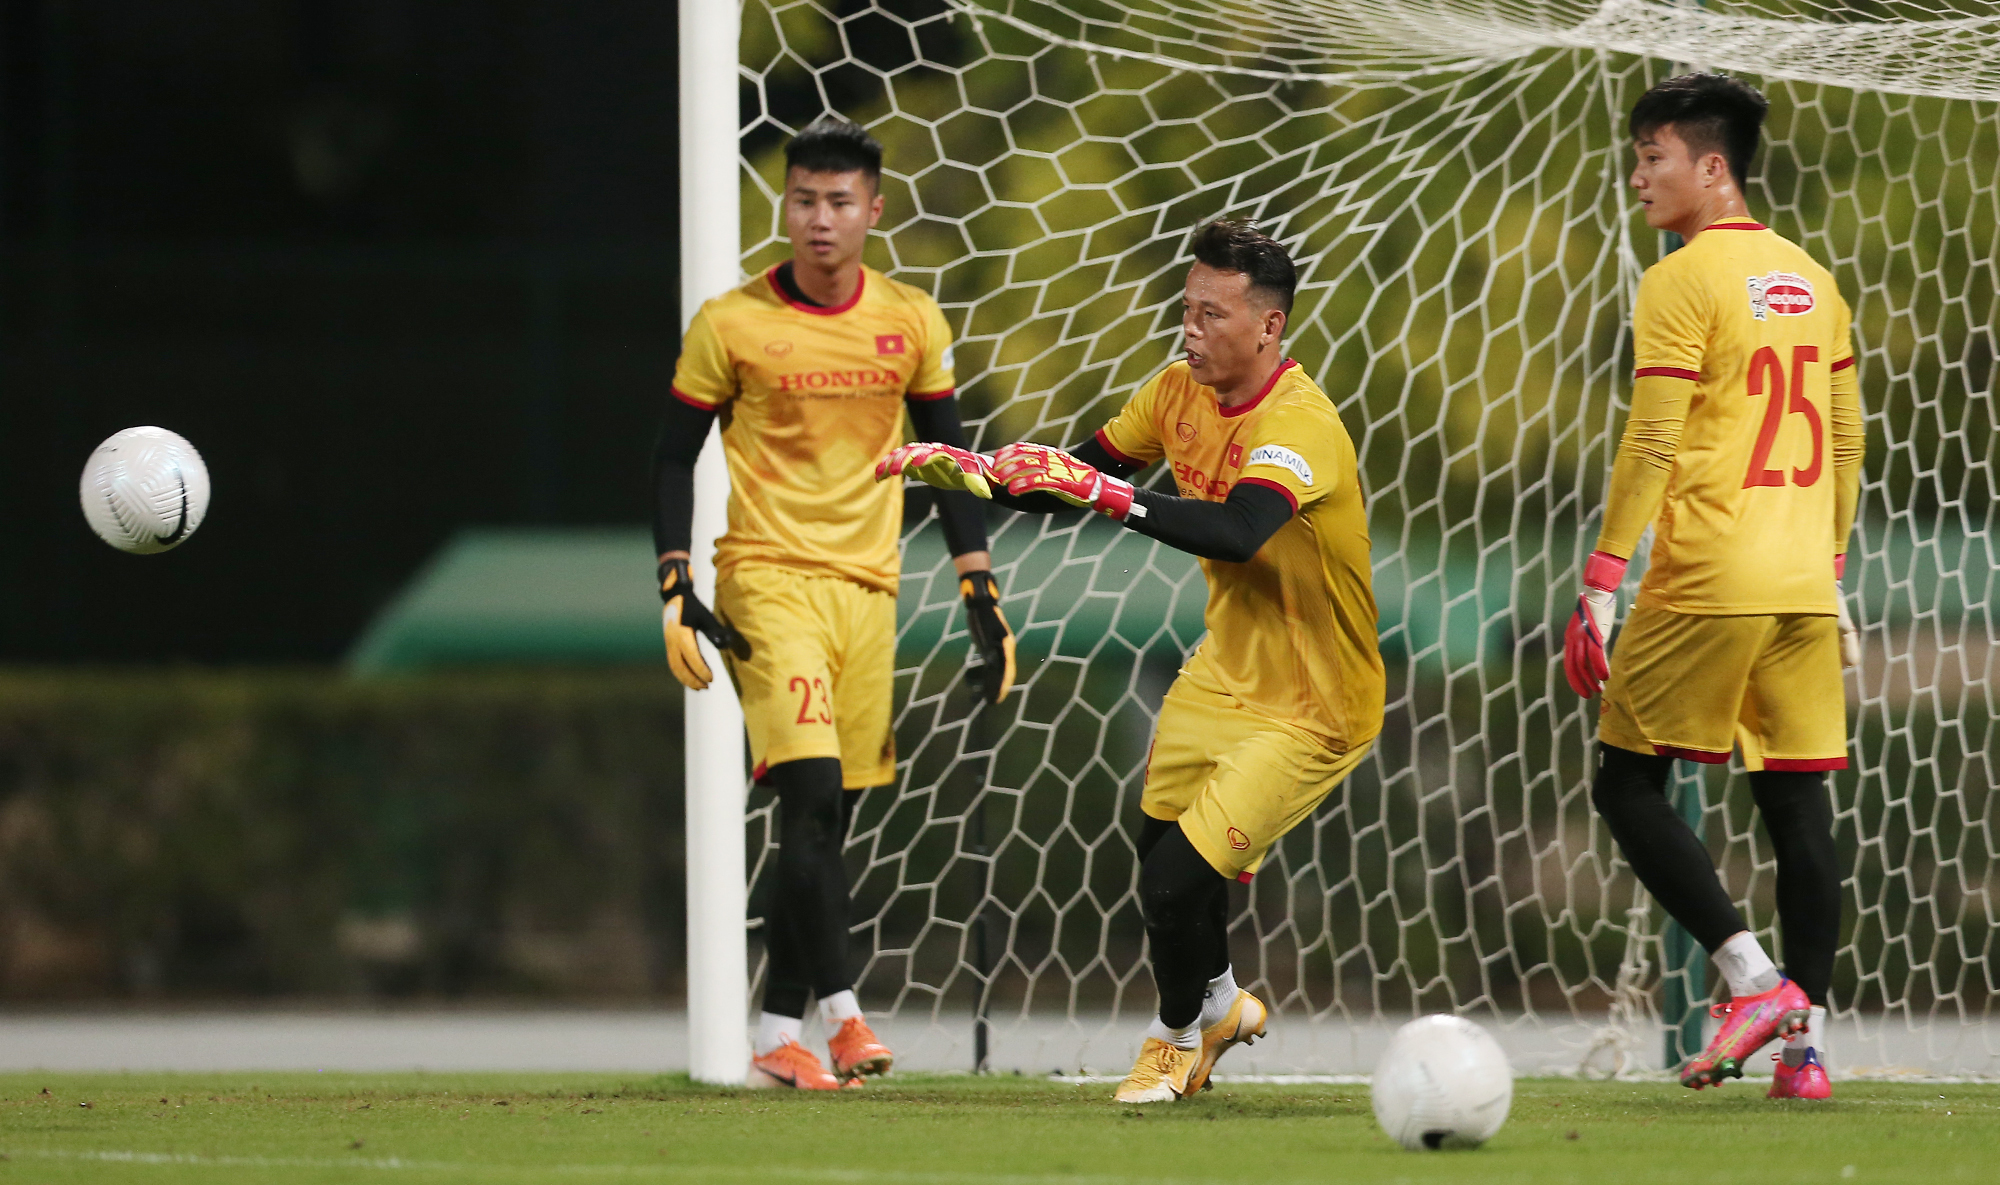 Dang Van Lam, the number one choice for the national goalkeeper position, was scheduled to fly from Japan to the UAE on June 2 to regroup with fellow teammates of the mens national football team. But after another keeper at his Japanese club Cerezo Osaka tested positive for Covid-19, Park had no choice but to exclude Lam from the Vietnam squad and have to pick one the remaining goalies - Nguyen Van Toan (left), Bui Tan Truong (middle) and Nguyen Van Hoang - as the main keeper for the remaining three match of Group G.